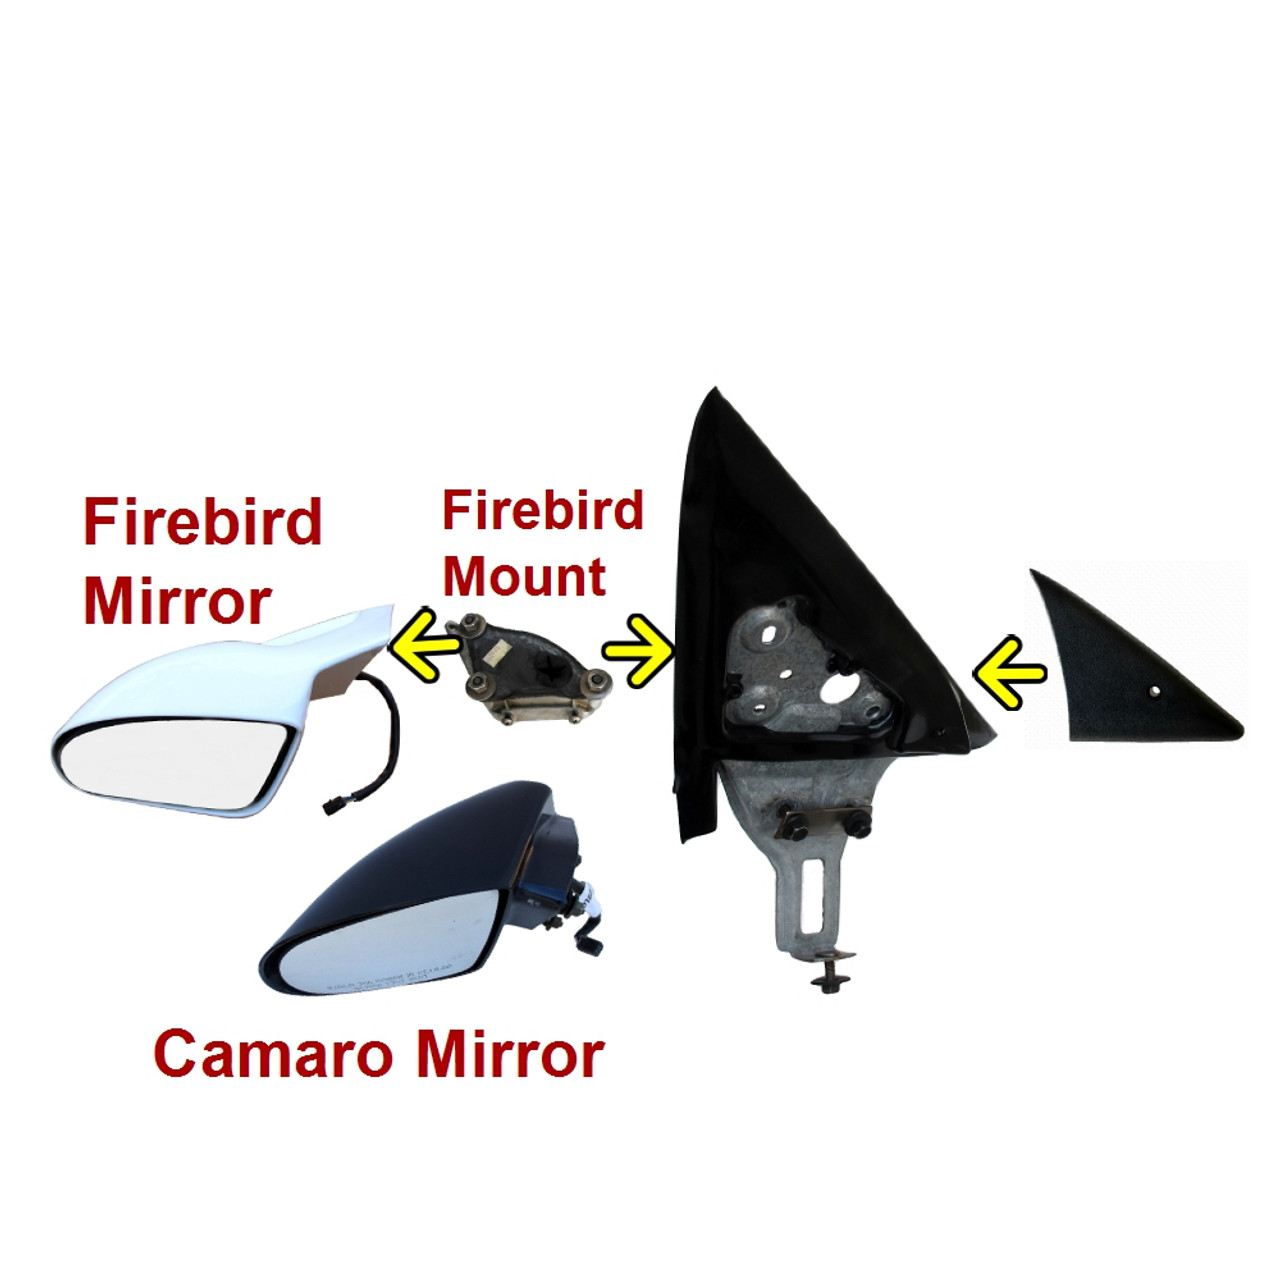 1993-2002 Camaro and Firebird Mirror Applique. LH